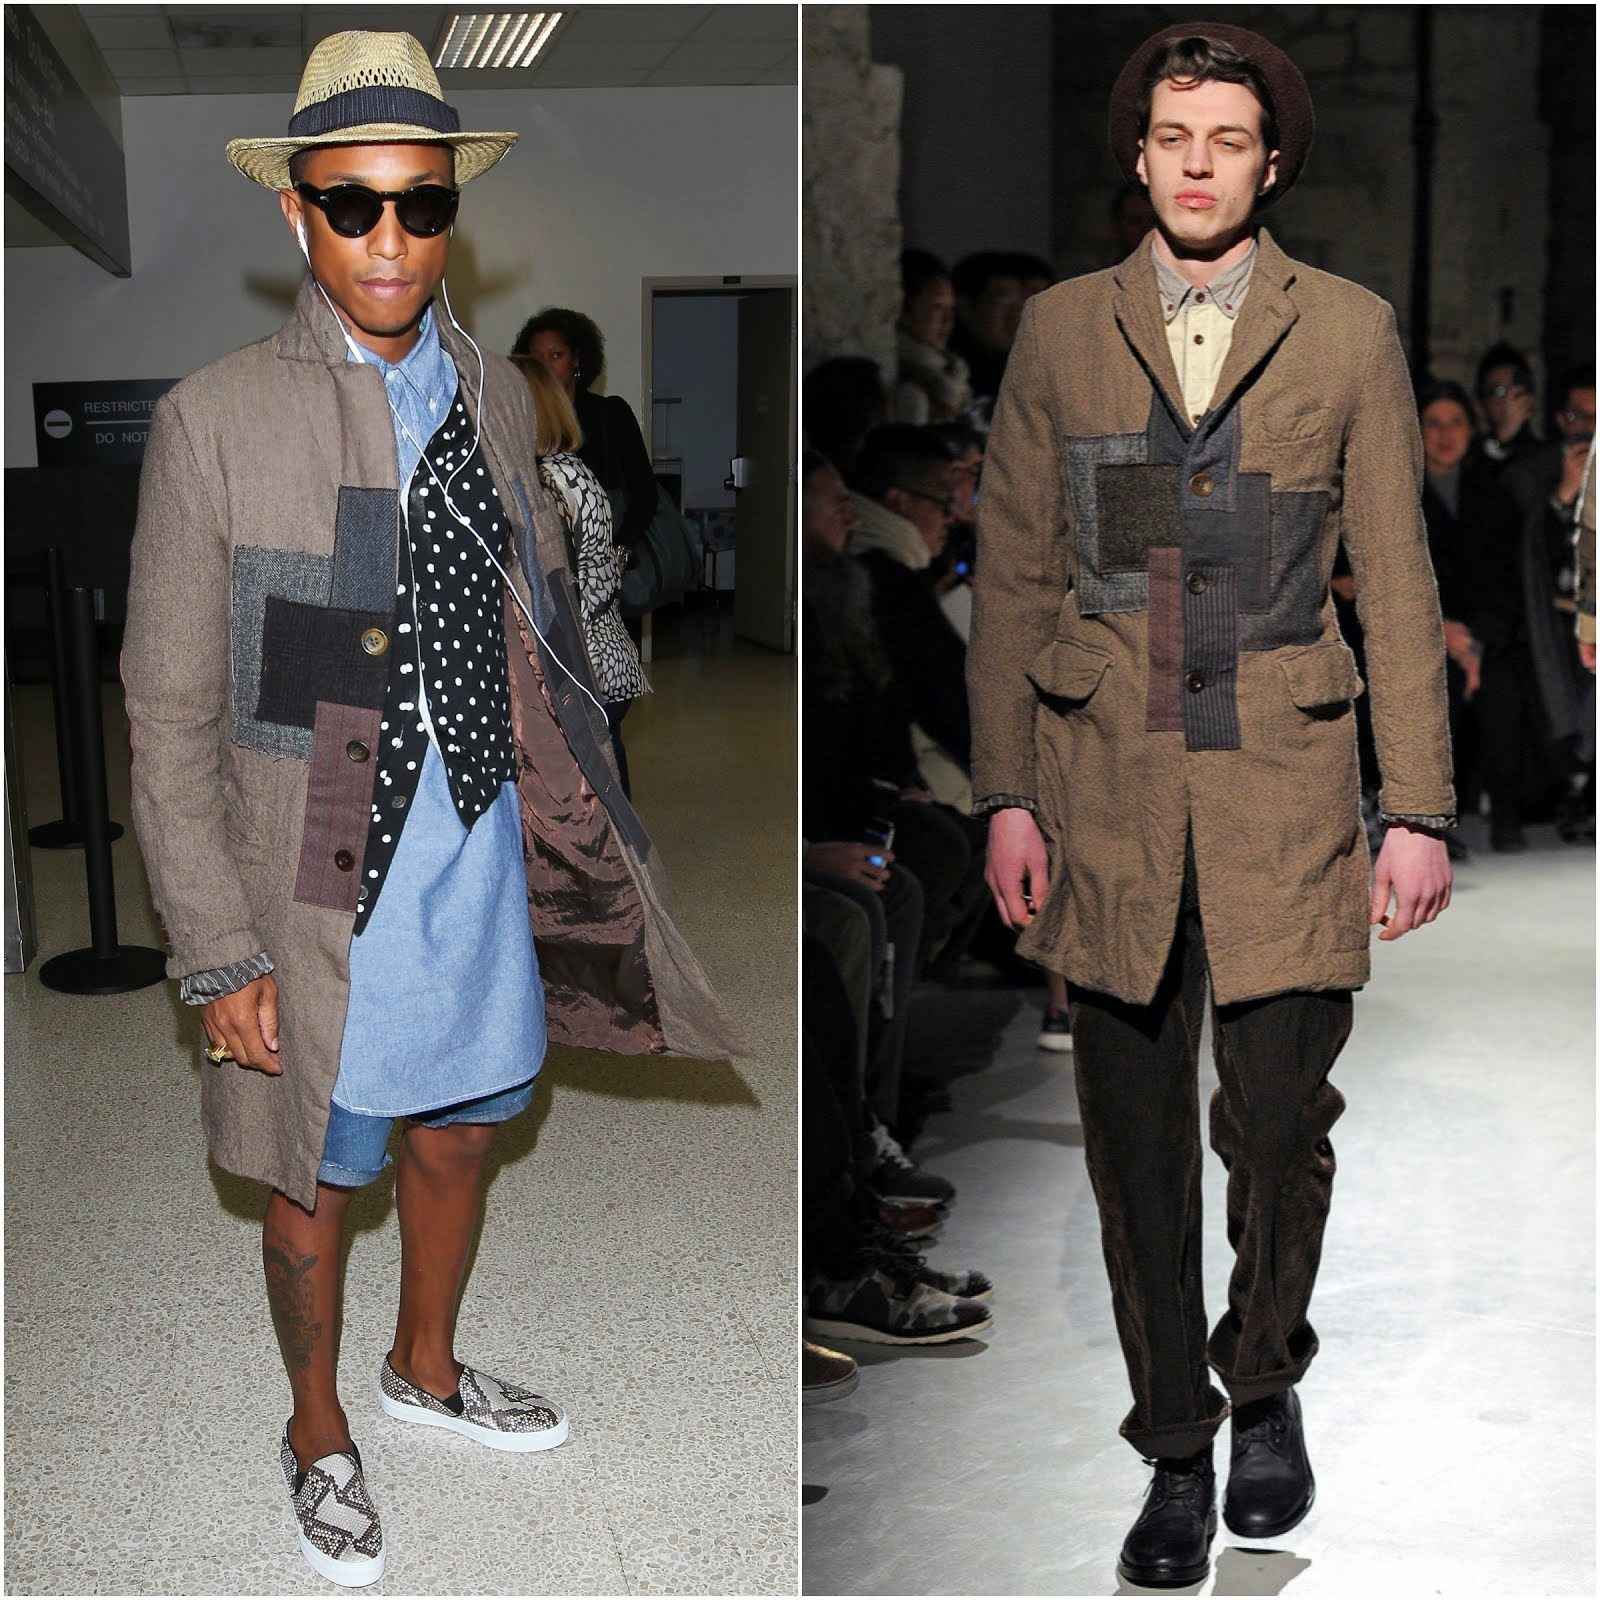 00O00 Menswear Blog: Pharell Williams in Junya Watanabe patchwork coat - LAX Airport September 2013